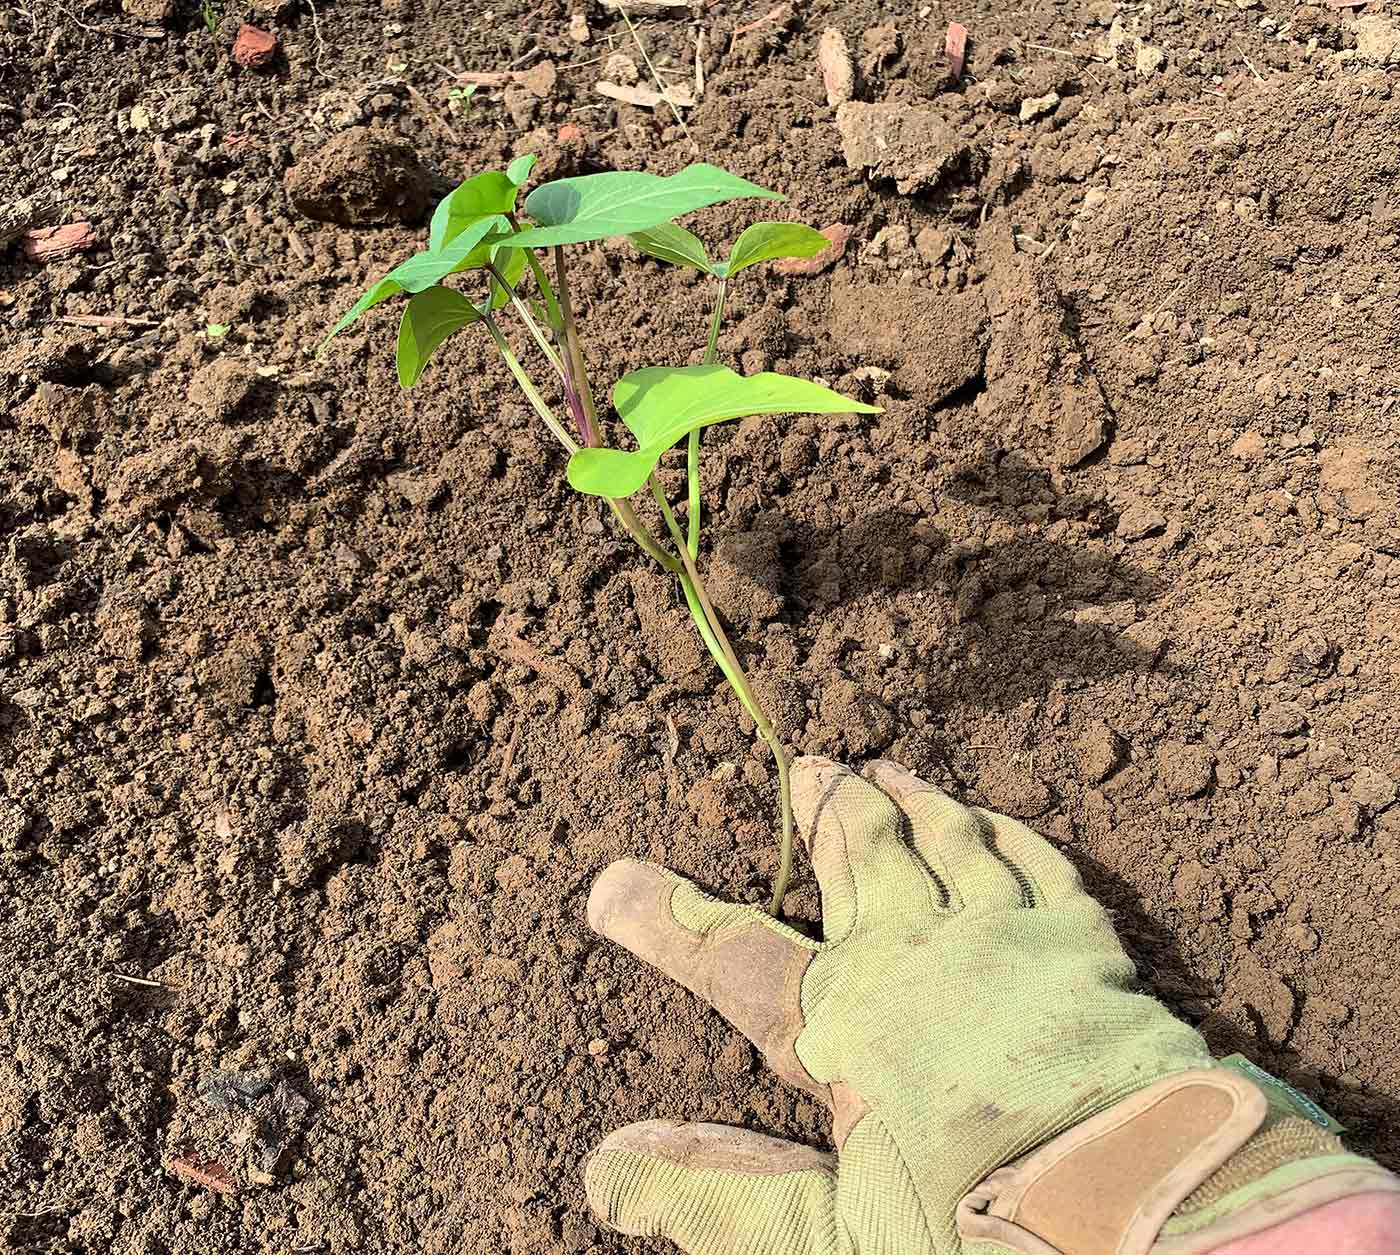 Sweet potato slip planted and ready to grow.